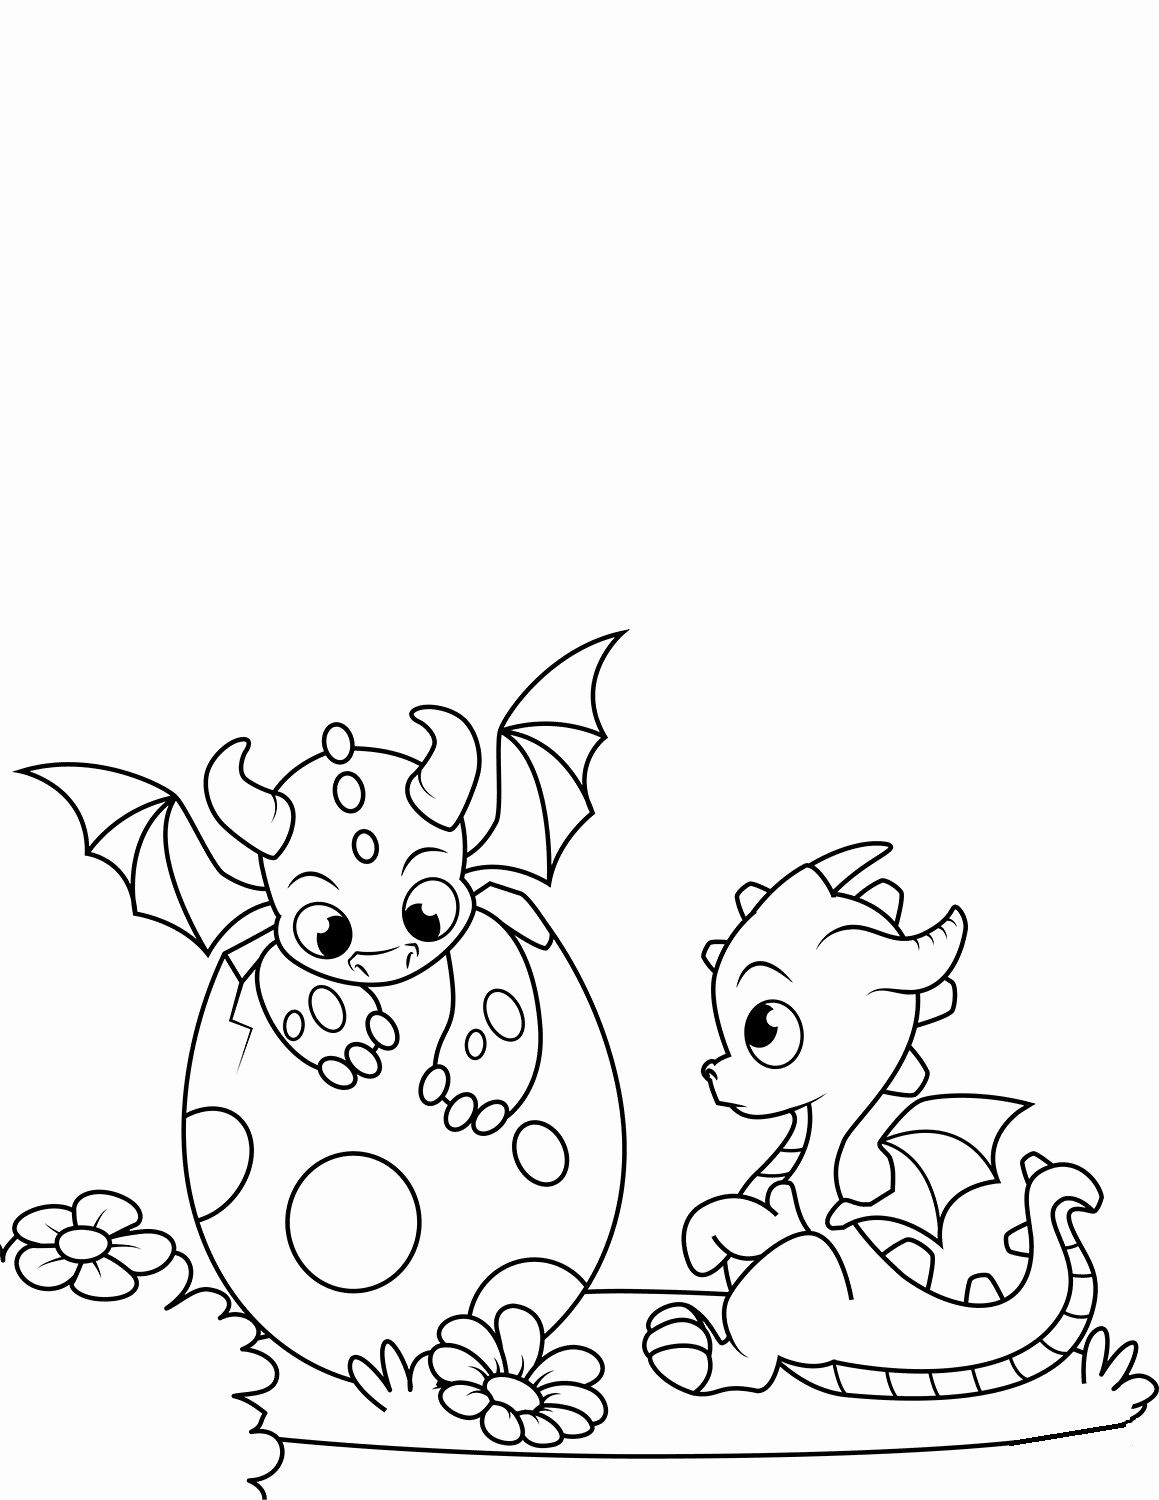 Baby Dragon Coloring Pages For Kids In 2020 Bunny Coloring Pages Dragon Coloring Page Cartoon Coloring Pages